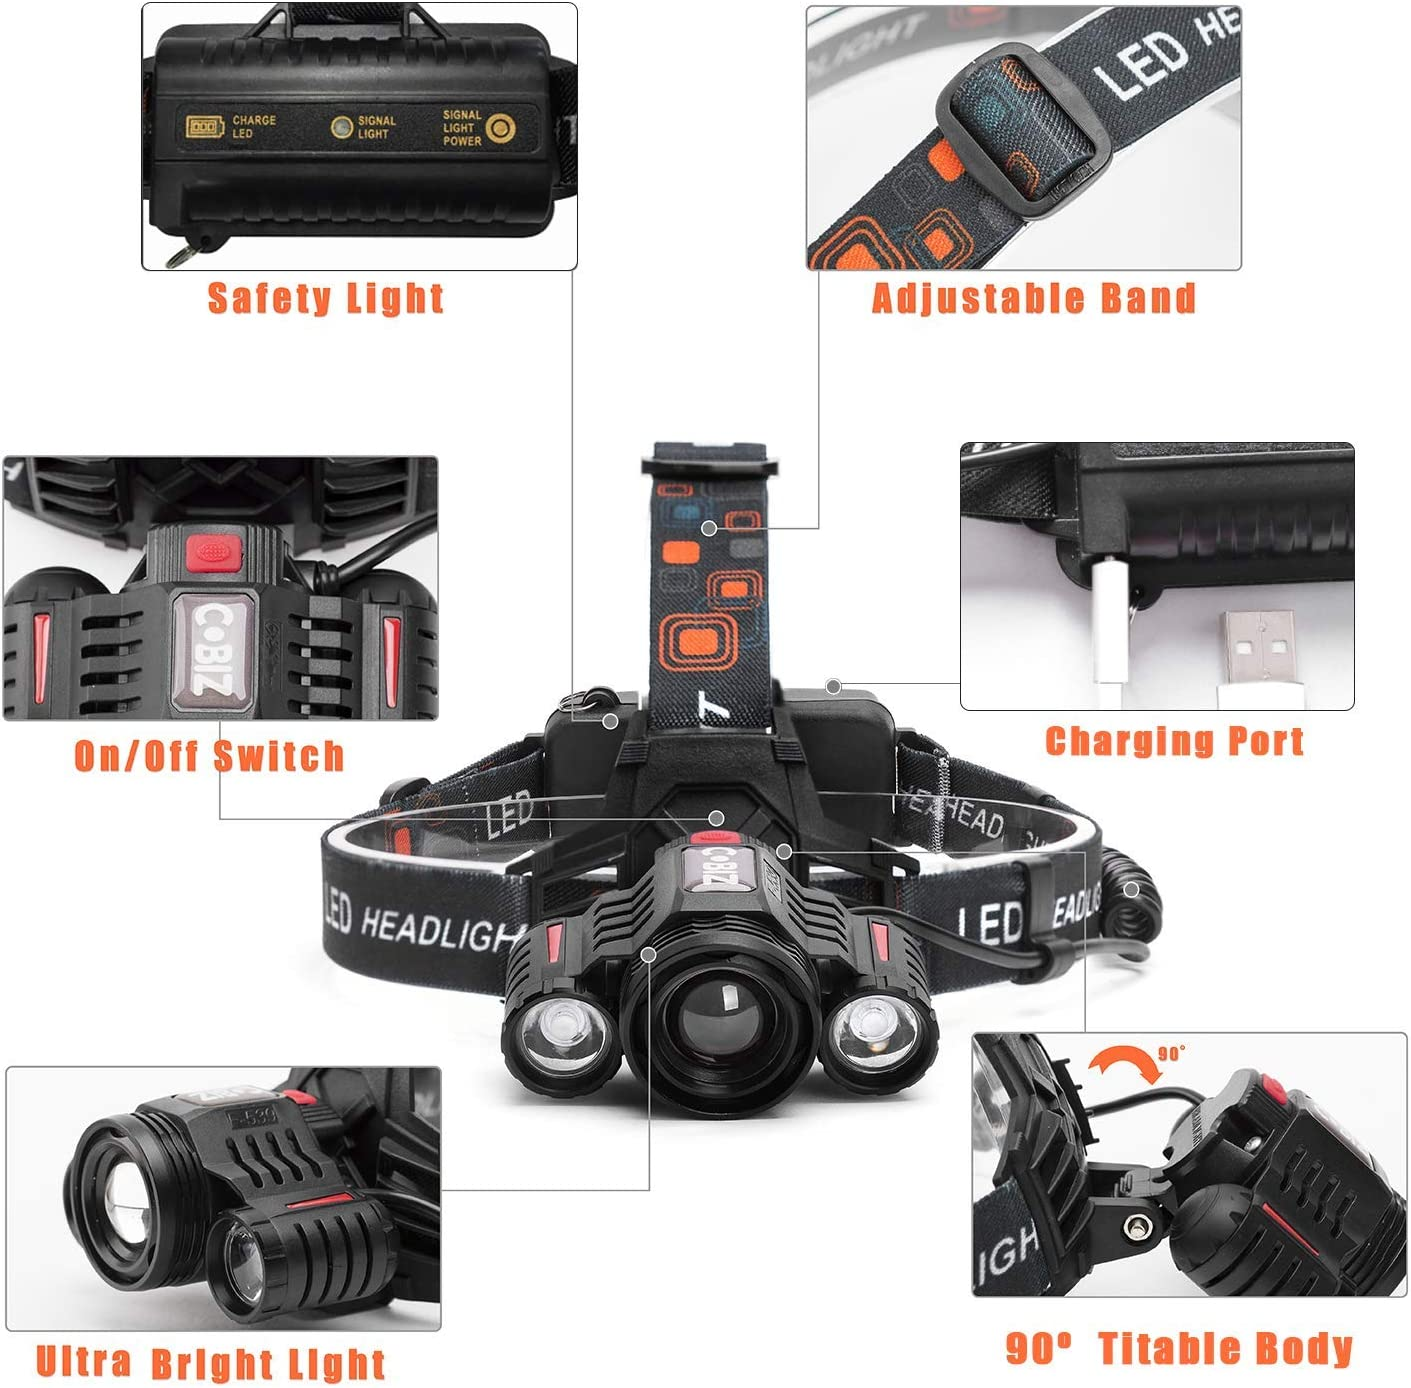 LED Brightest High 6000 Lumen Work Headlight,IPX4 Waterproof /& 18650 Flashlight with Zoomable Work Light,Head Lights for Camping Charcoal Cobiz Headlamp Flashlight USB Rechargeable